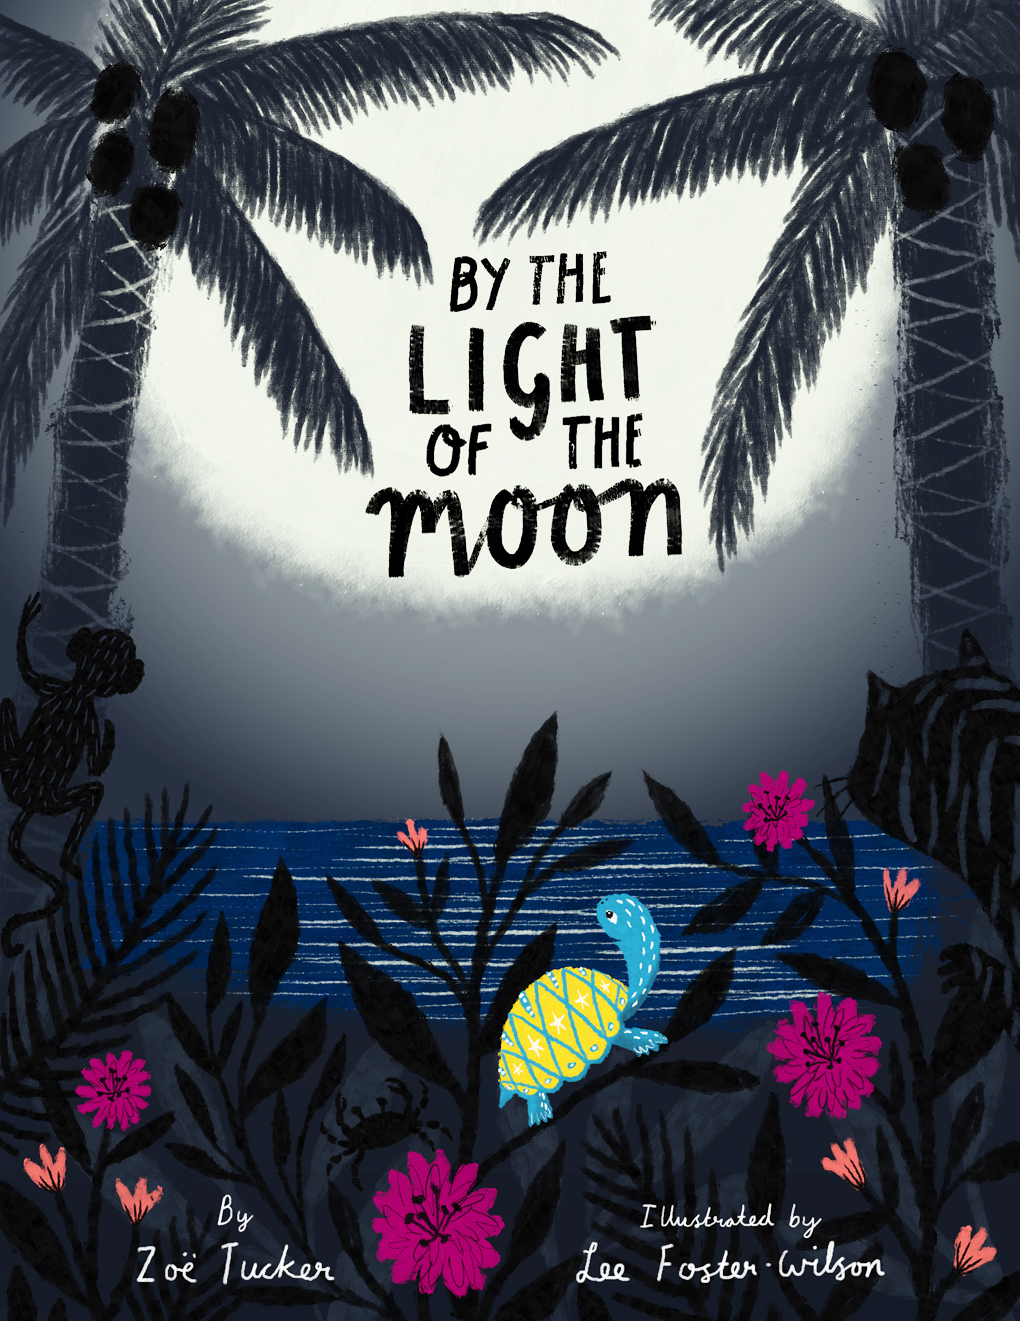 By the Light of the Moon Book Cover · Lee Foster-Wilson